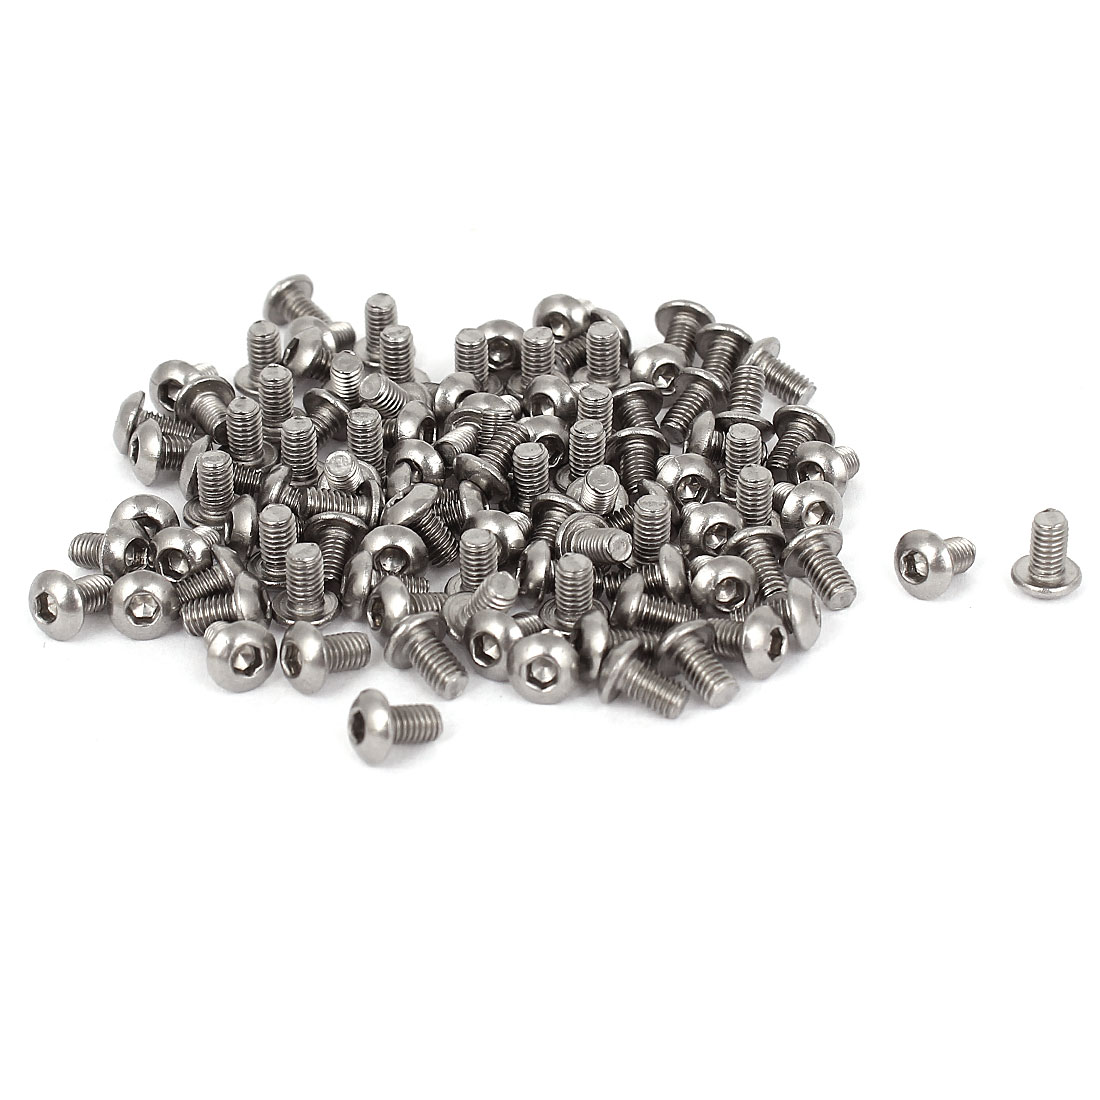 100 Pcs M3x5mmx0.5mm Stainless Steel Button Head Hex Socket Key Bolts Screws